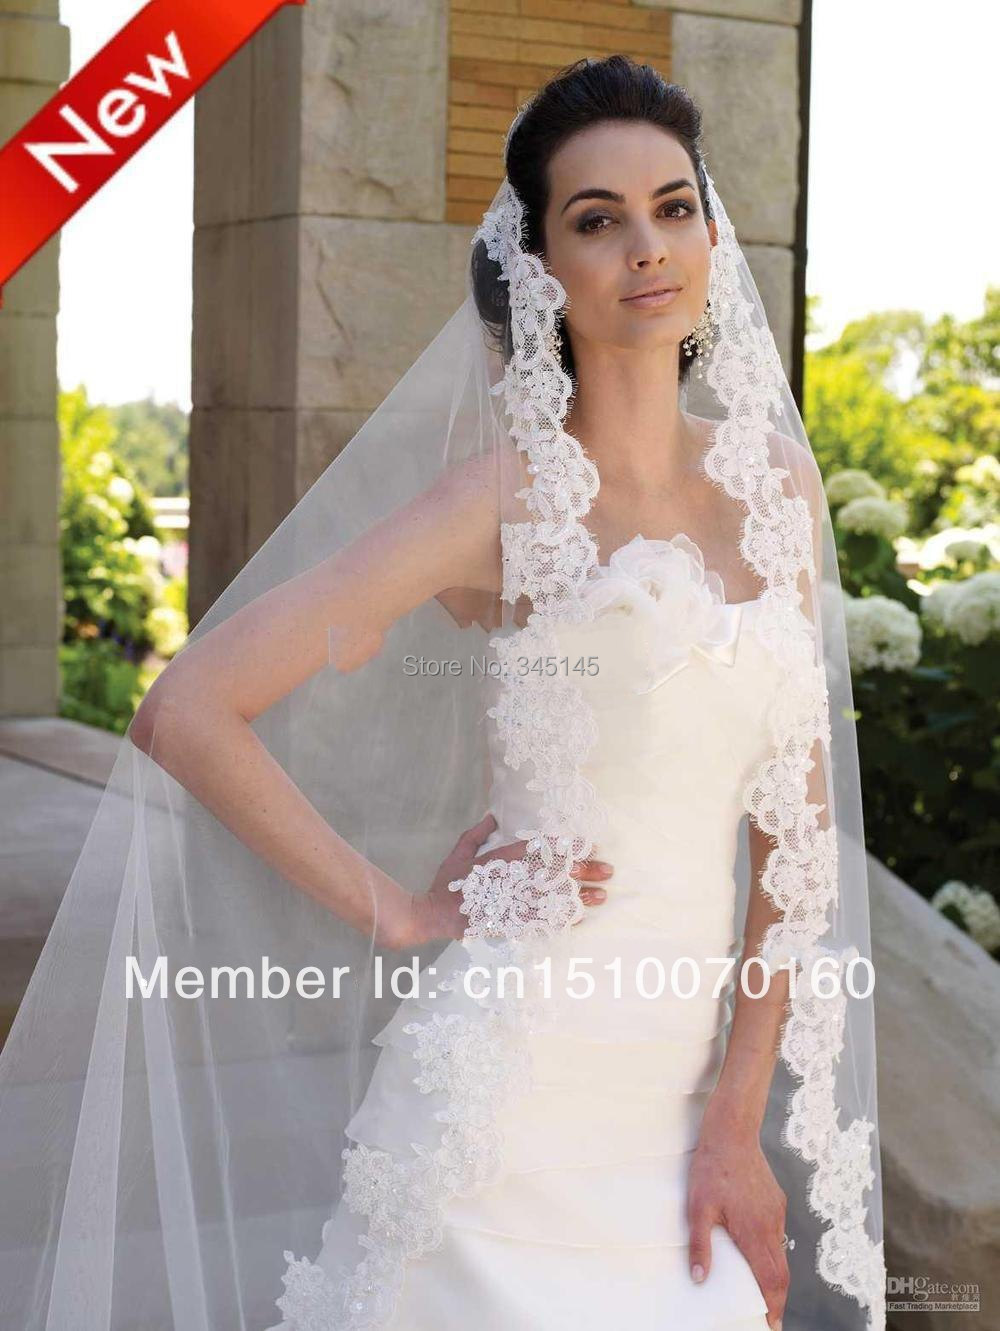 021275c9dcc7 Cathedral Cut Ivory White 3M 1T Long Wide Lace Purfle Beaded Bridal Veils  Tulle Wedding Dress Veil Custom Bridal Veils Mantilla-in Bridal Veils from  ...